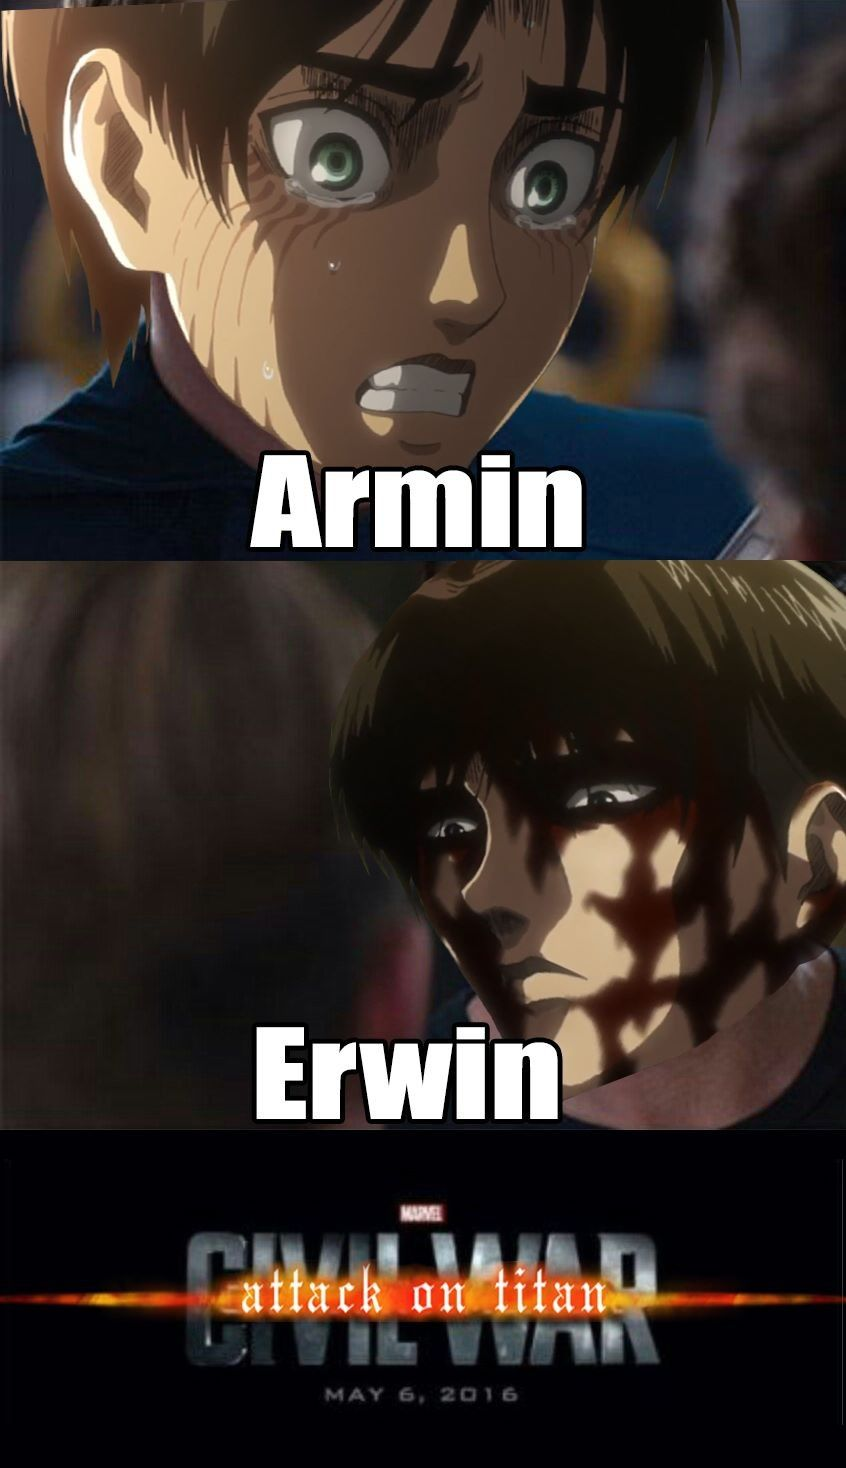 Pin By Slice 5588 On Memes De Anime Attack On Titan 2 Attack On Titan Erwin Attack On Titan